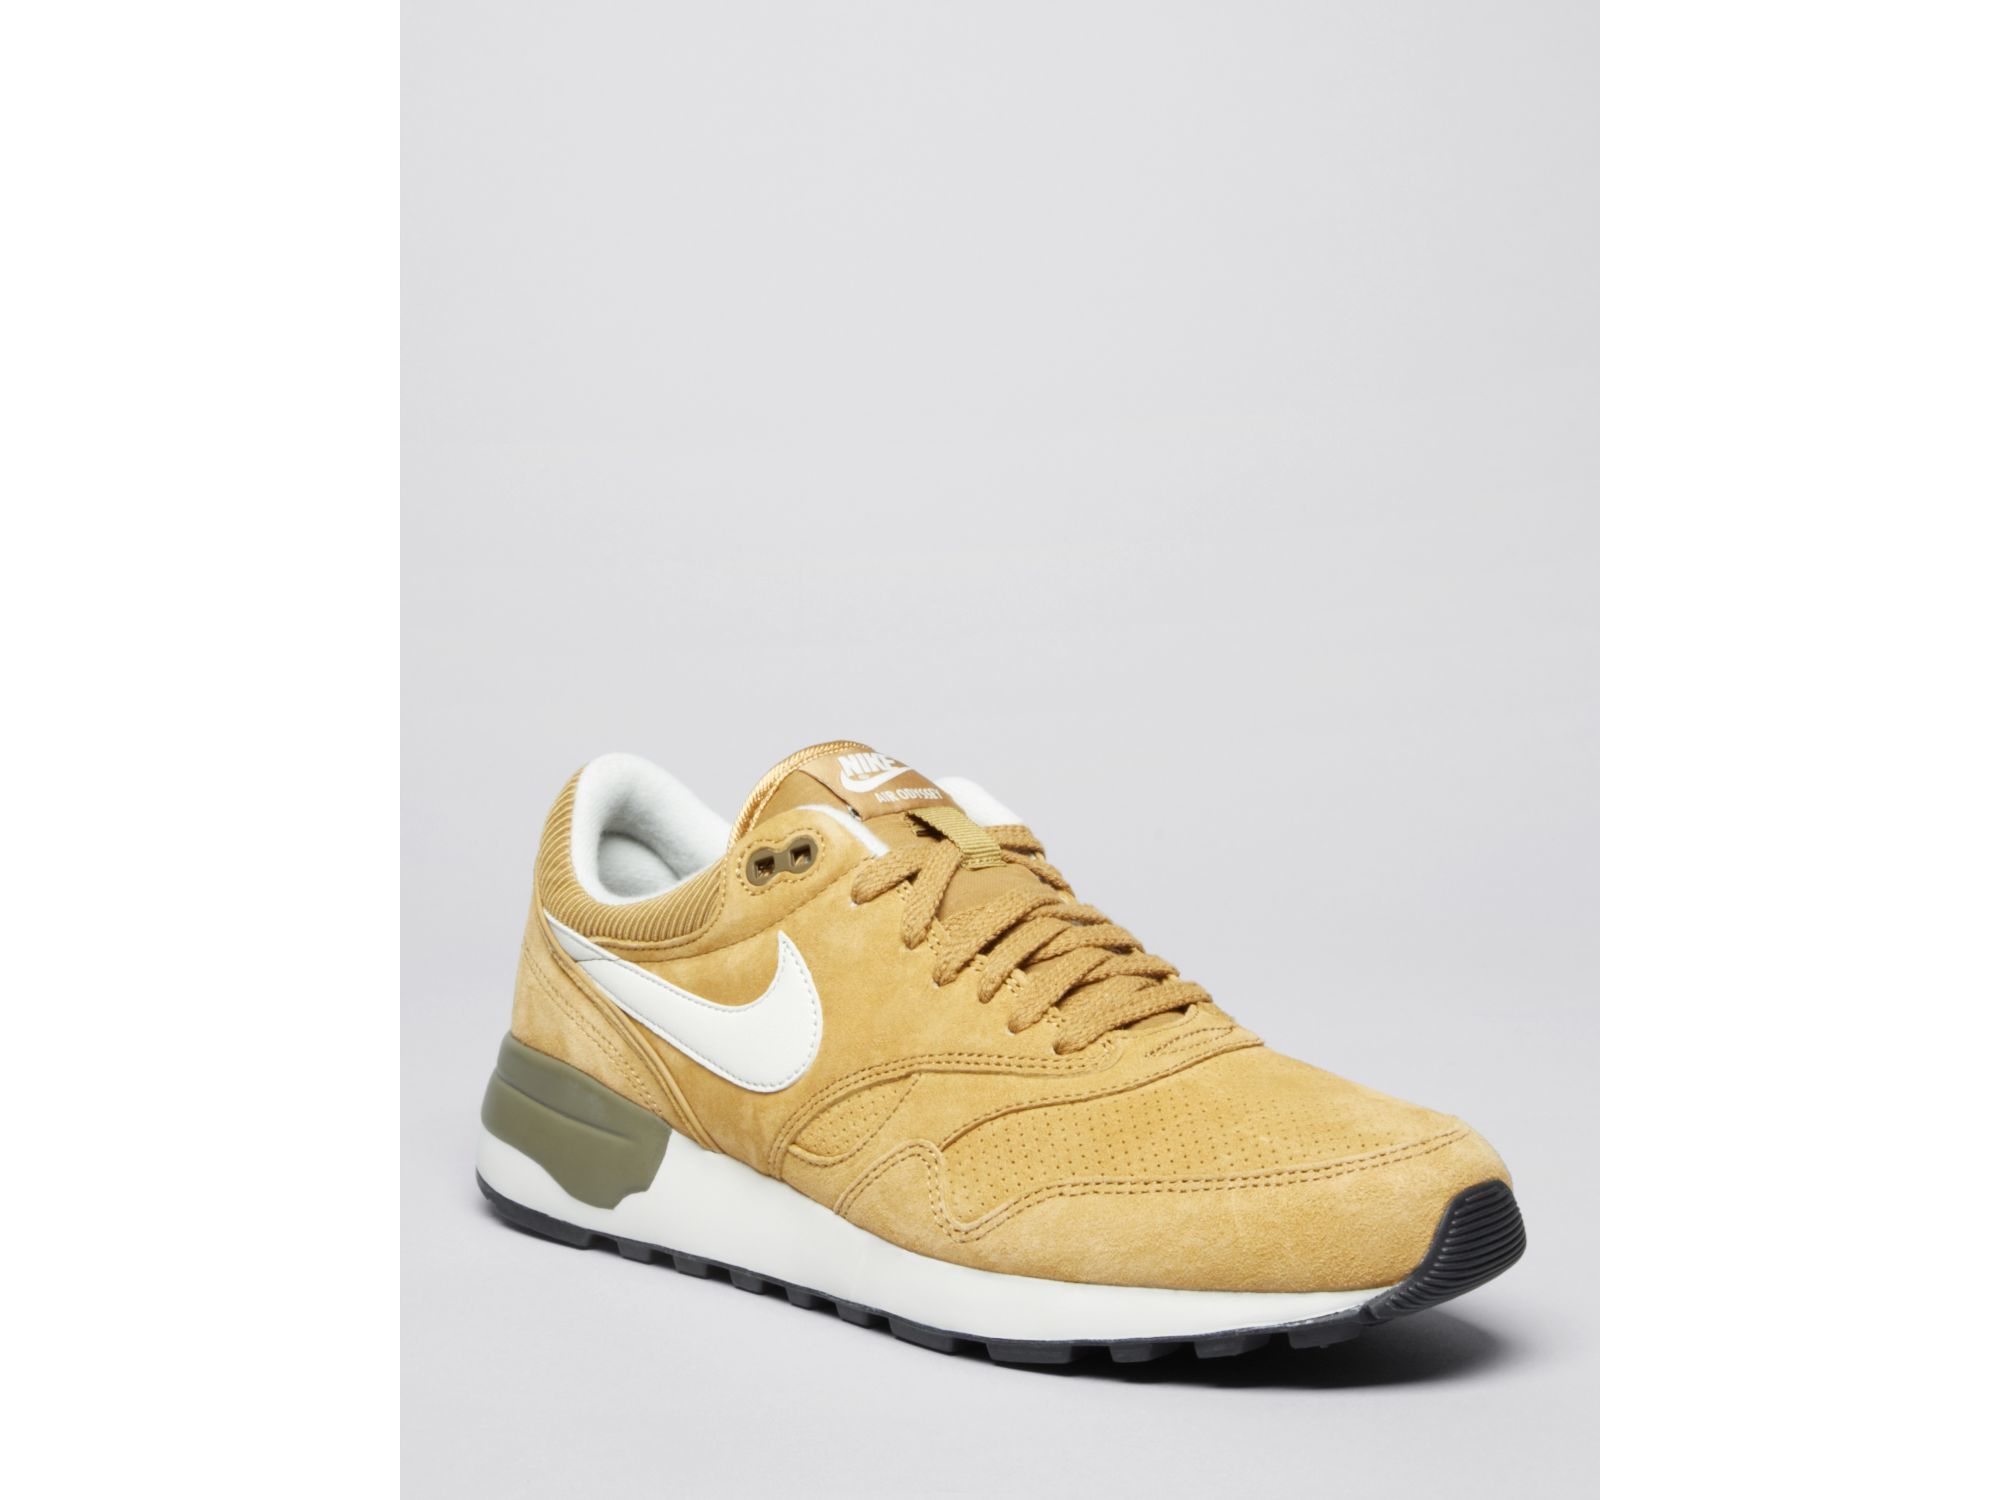 Nike Air Odyssey Leather Sneakers in